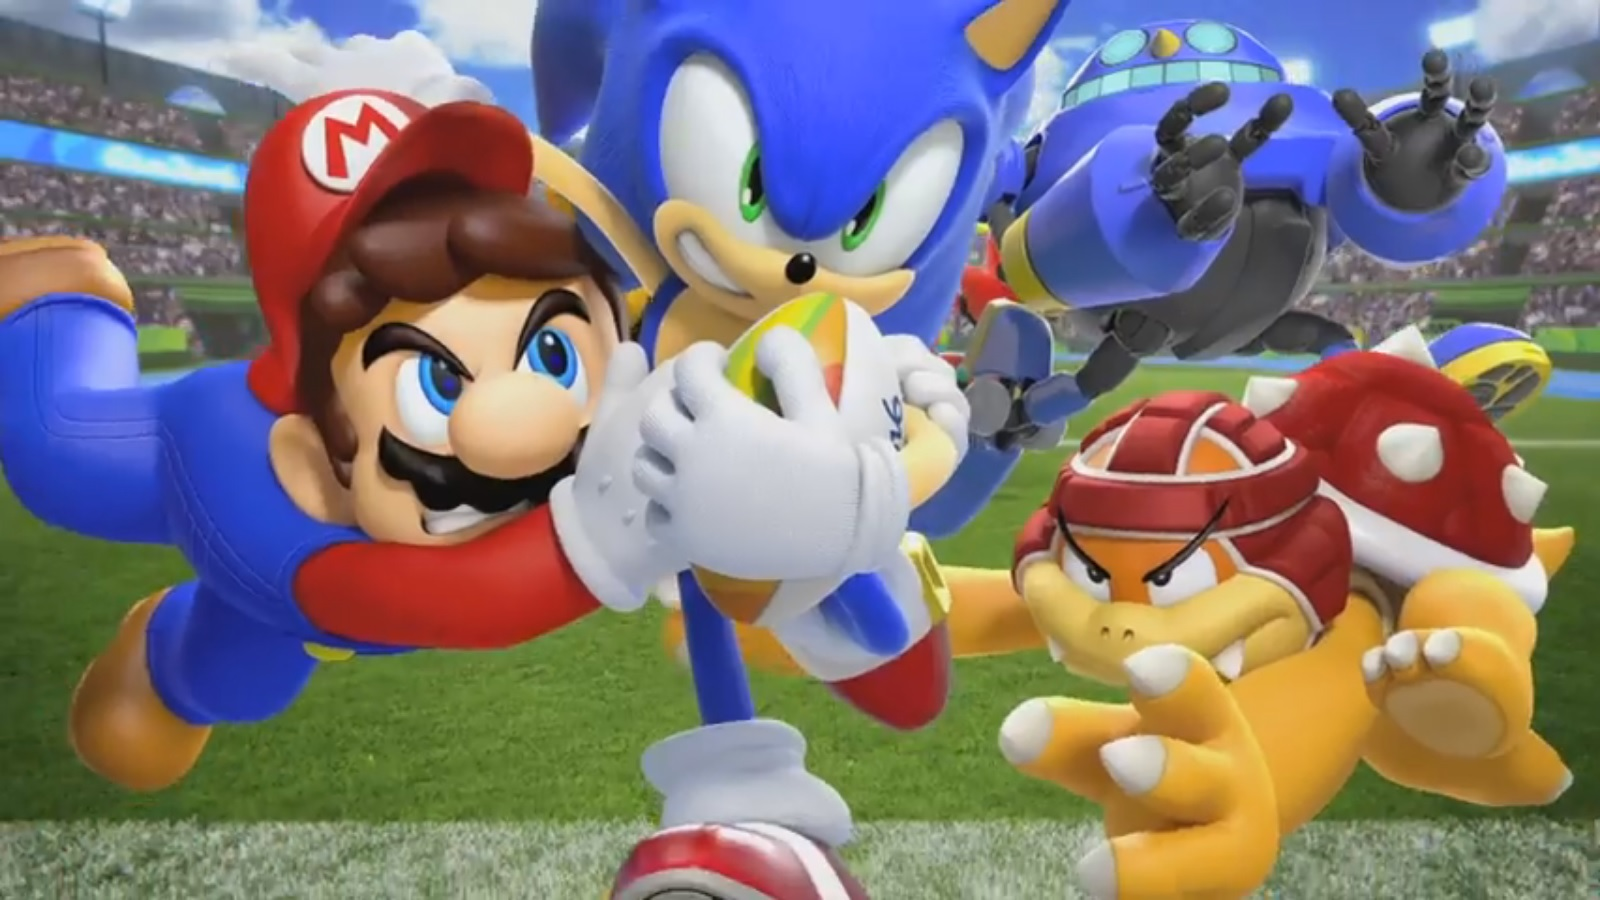 mario sonic at the rio 2016 olympic games wii u commercial